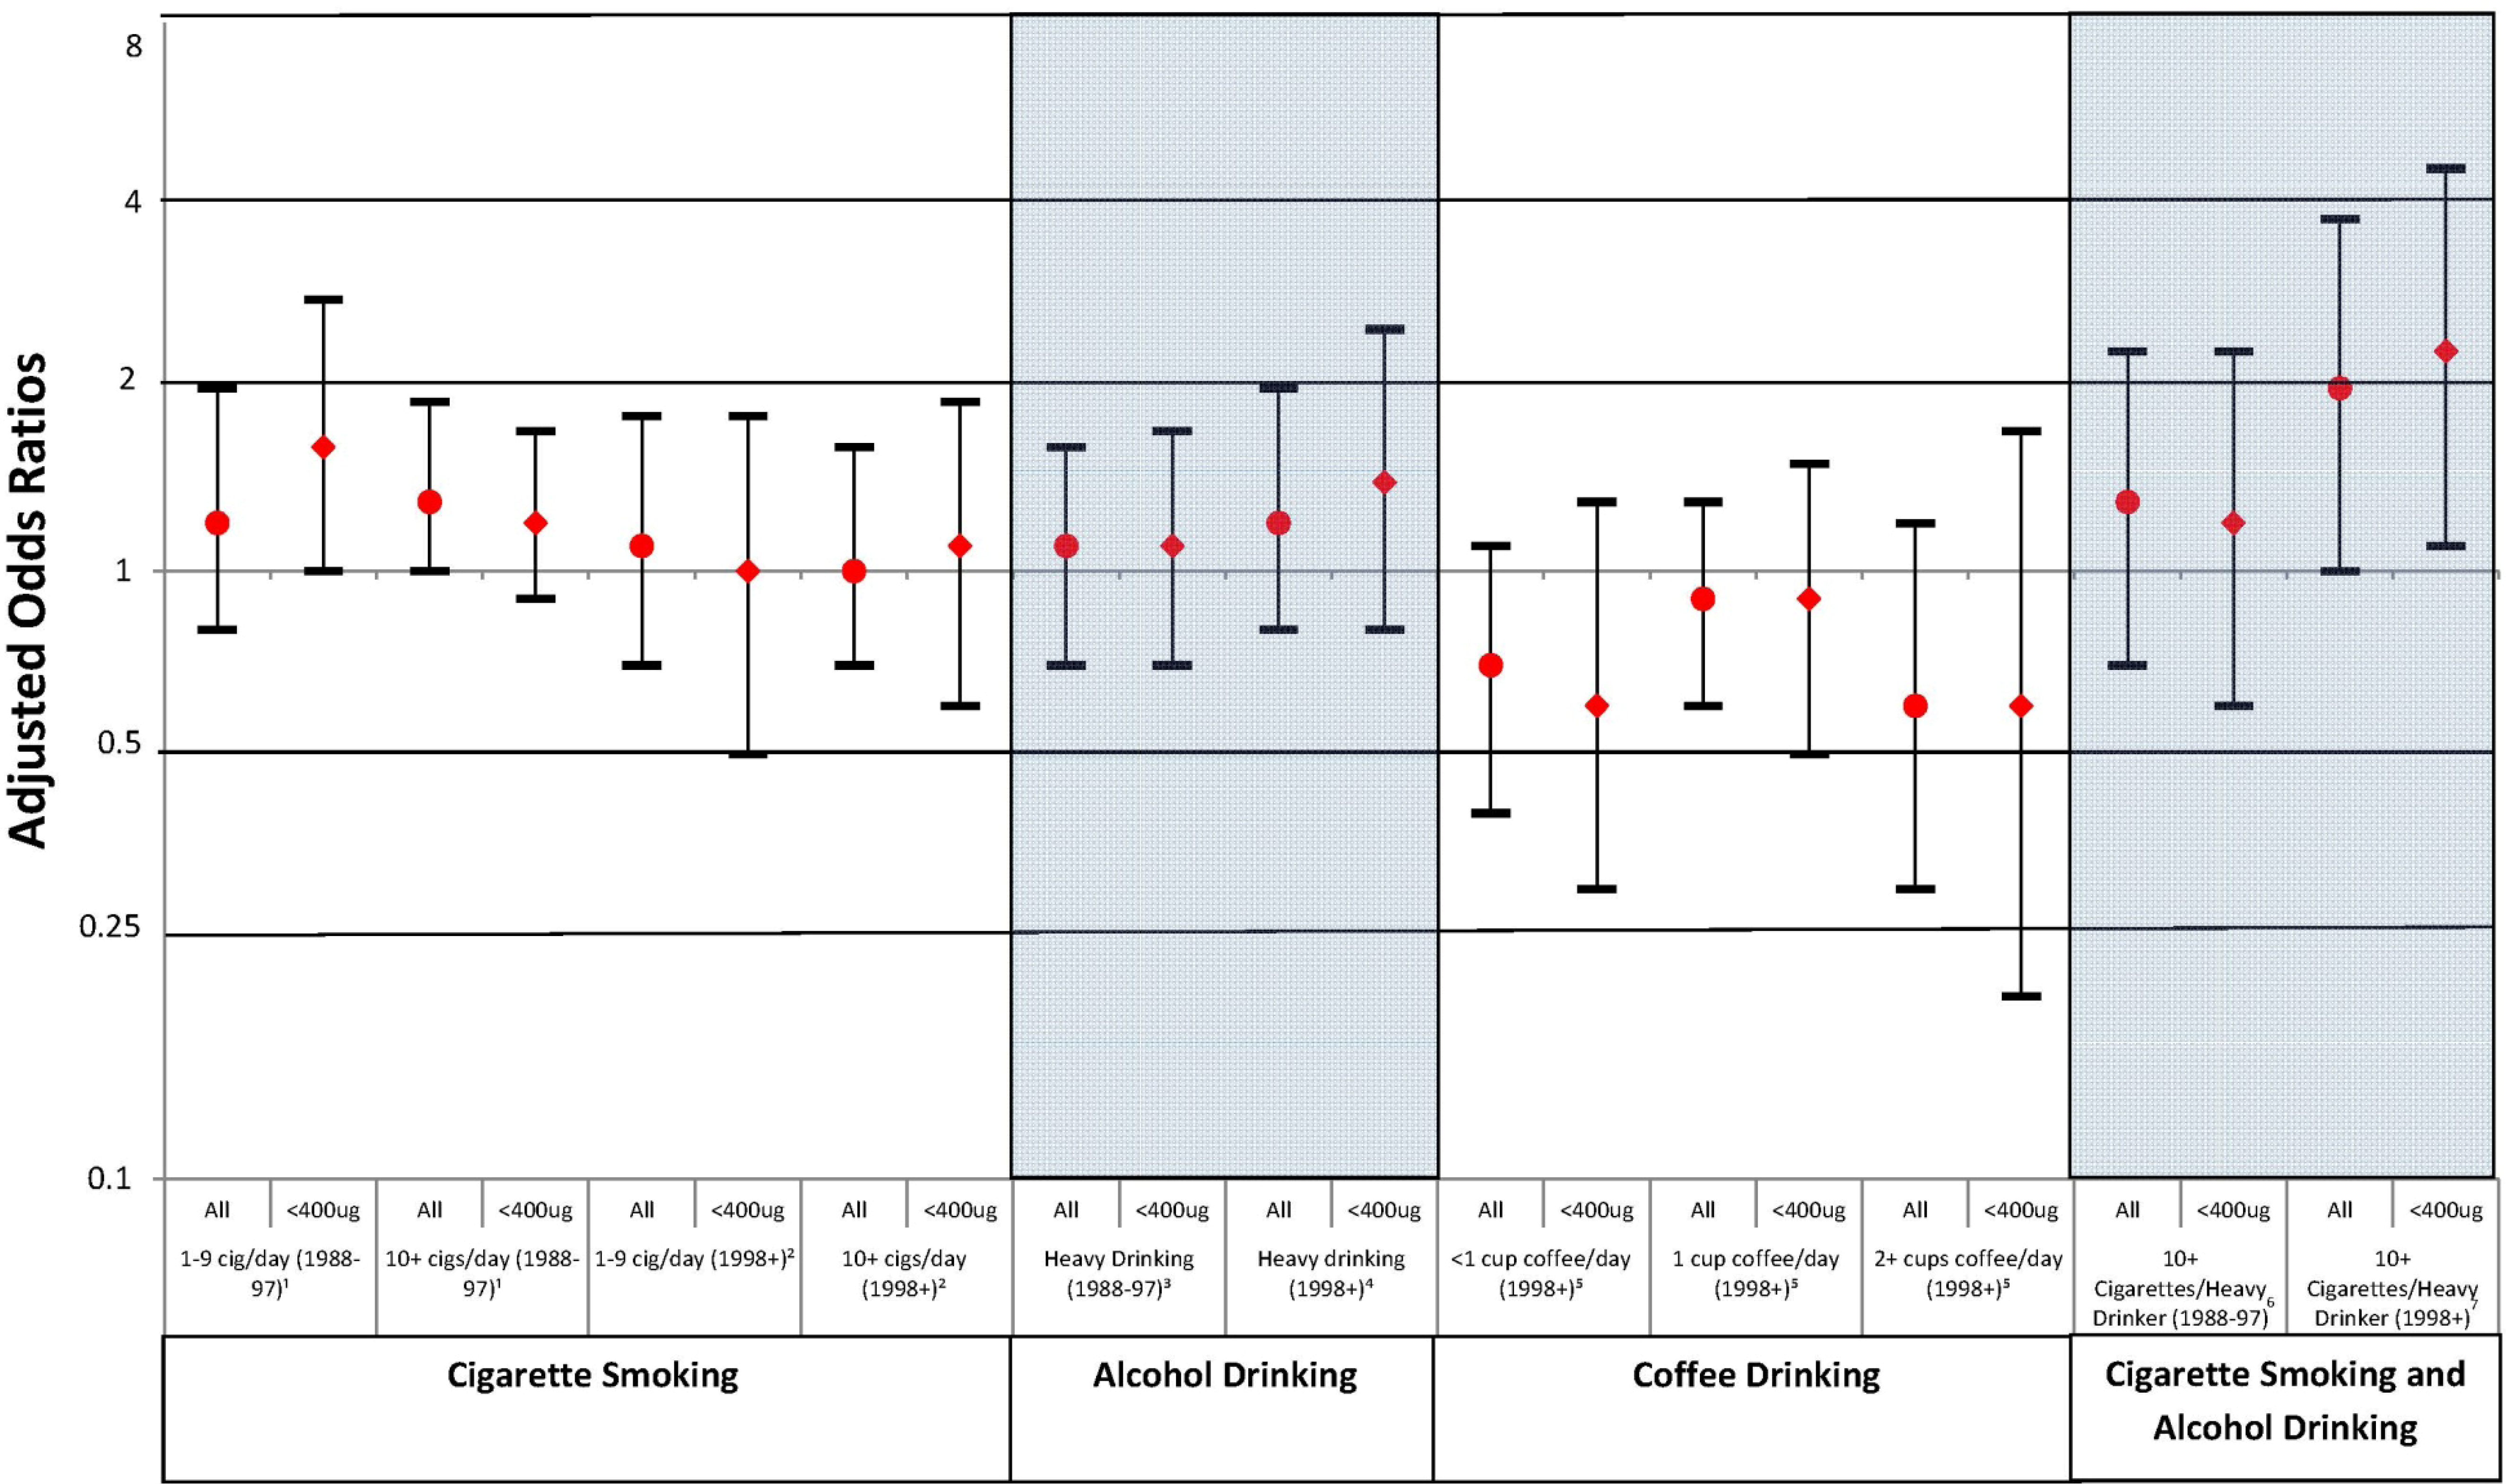 case control epidemiologic study involving self-reported alcohol consumption Alcohol and arrhythmias: a comprehensive review we have reviewed the major epidemiological studies undertaken self reported alcohol consumption.